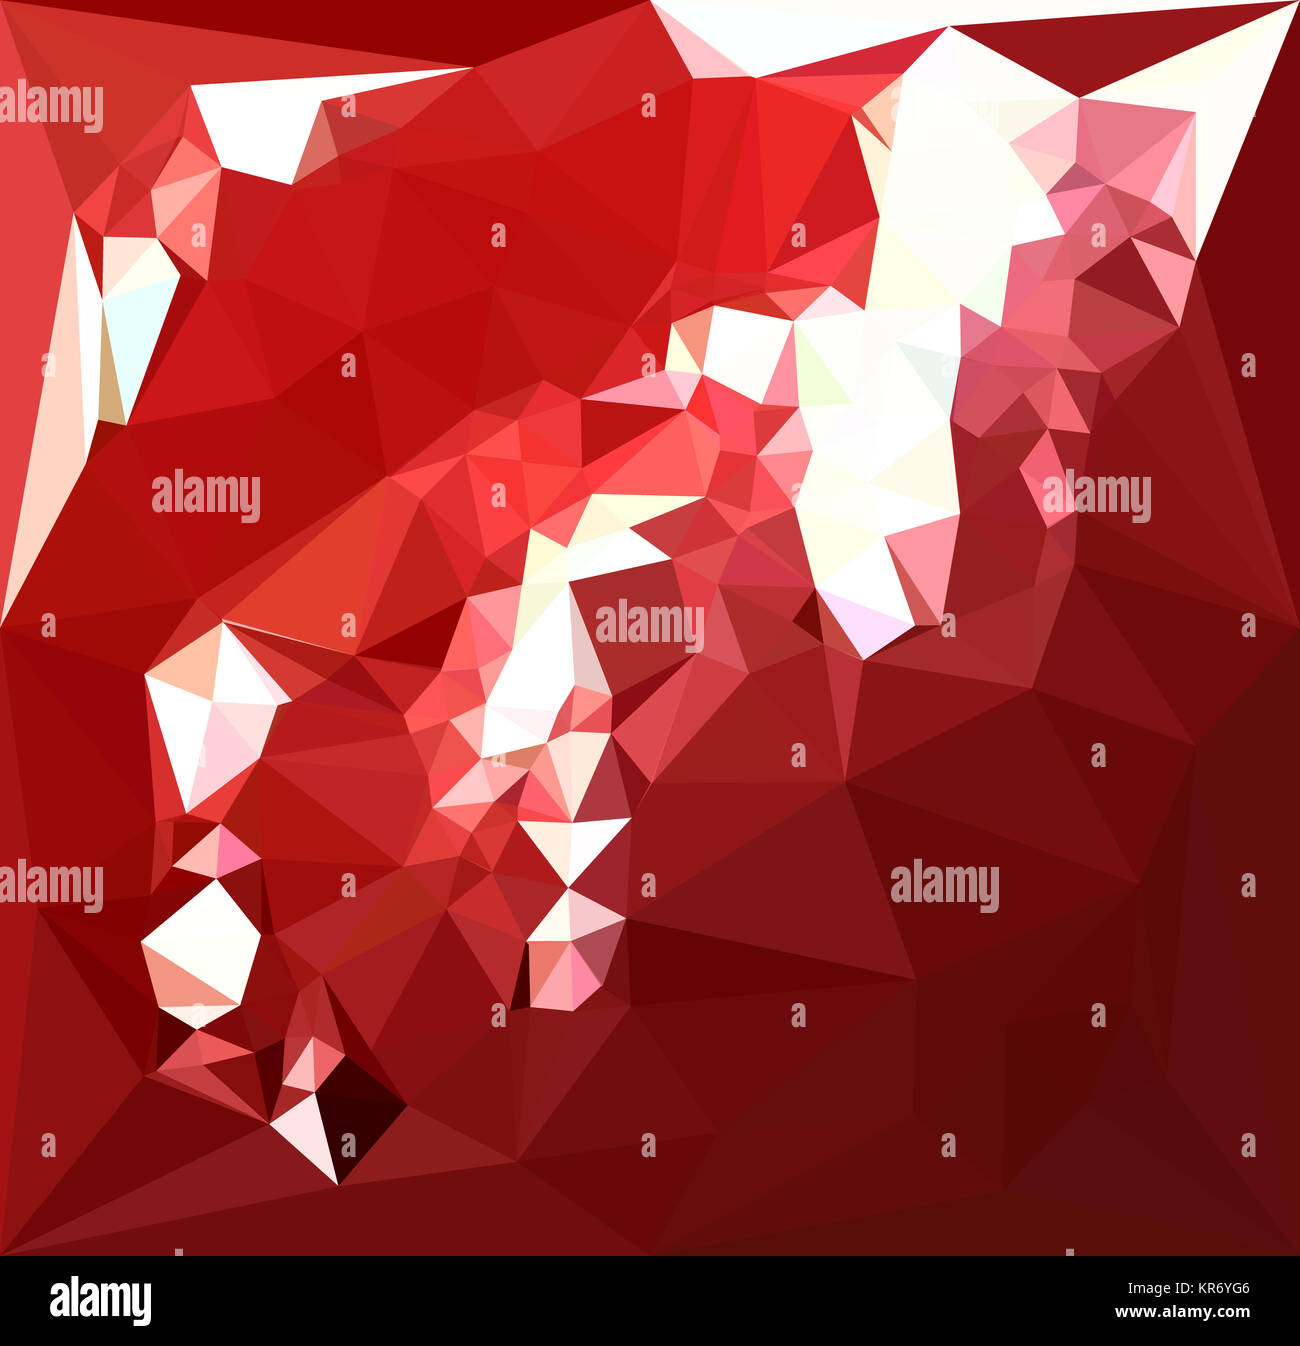 Polygon Gmbh coquelicot abstract low polygon background stock photo